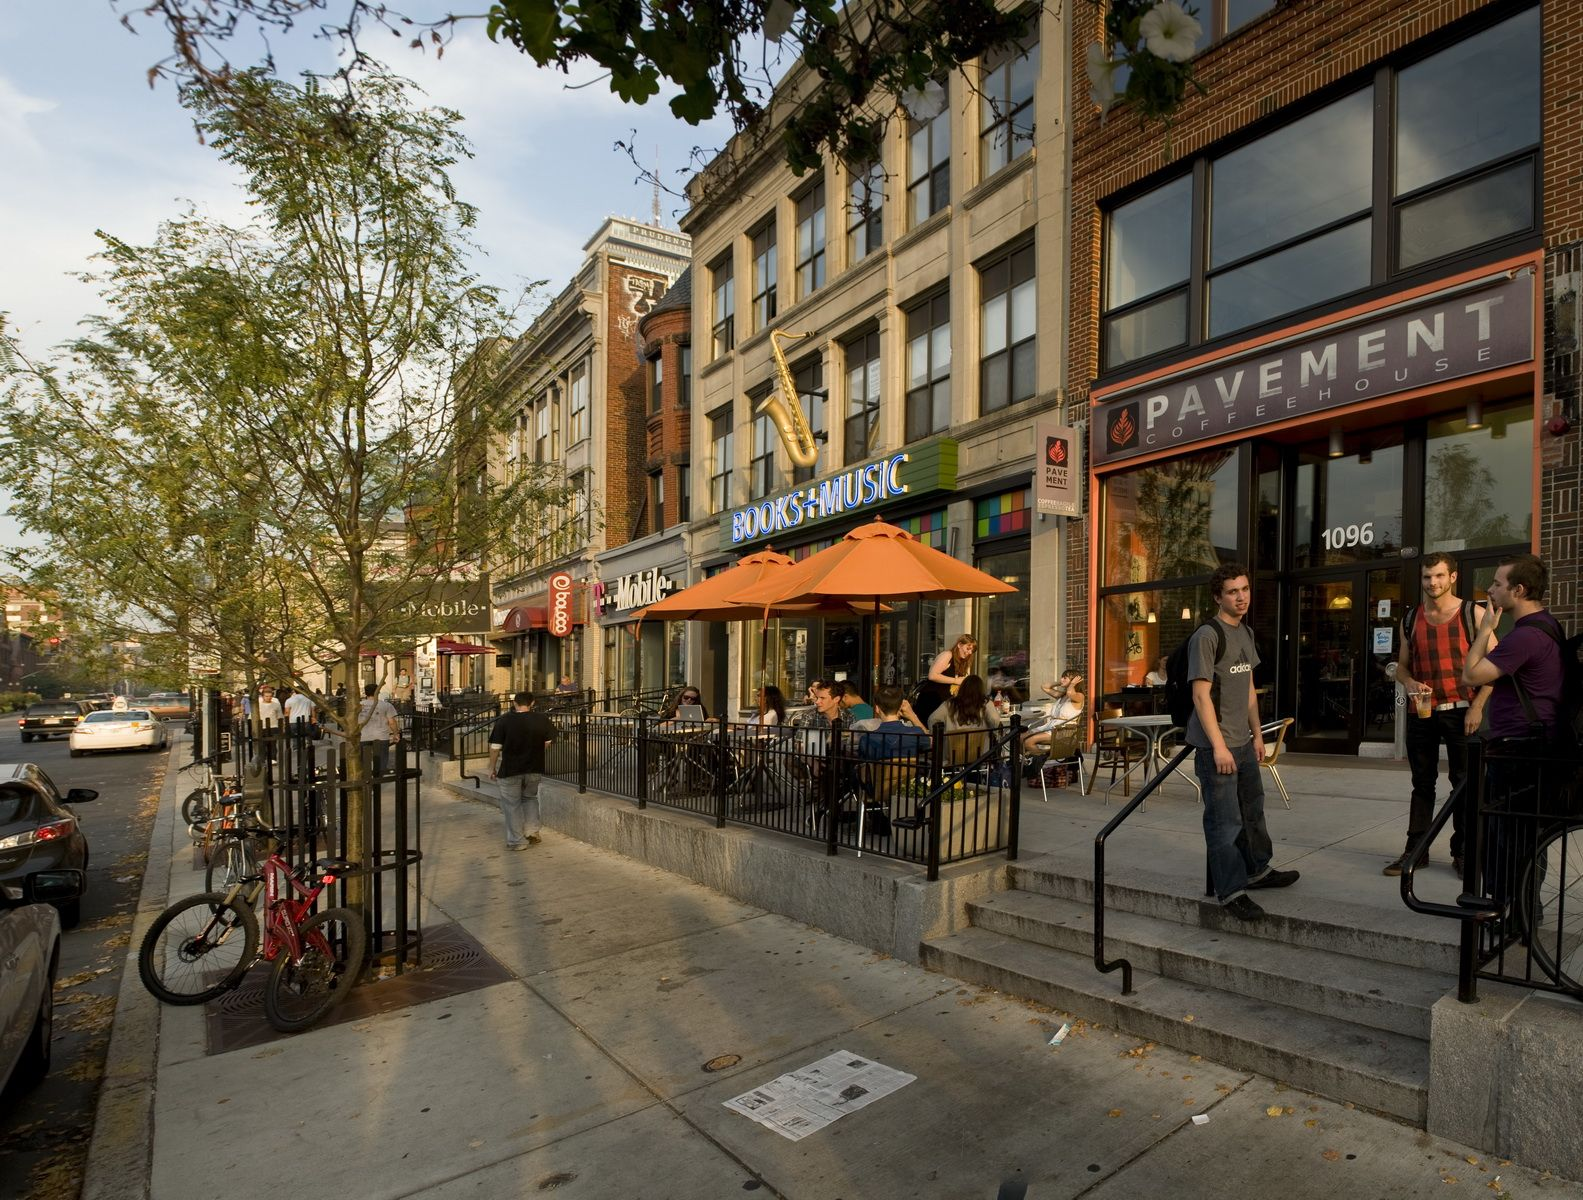 Http Www Bing Com Images Search Q Streetscape Urban Fabric Commercial And Office Architecture Eclectic Design